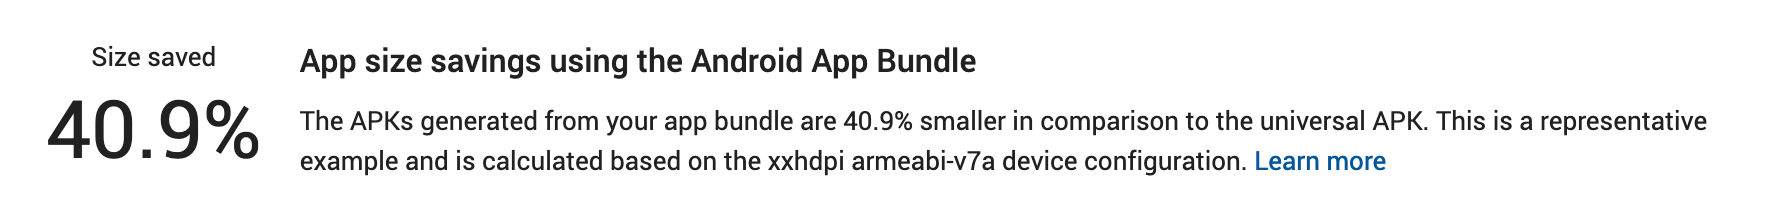 App Bundle Save Percentage